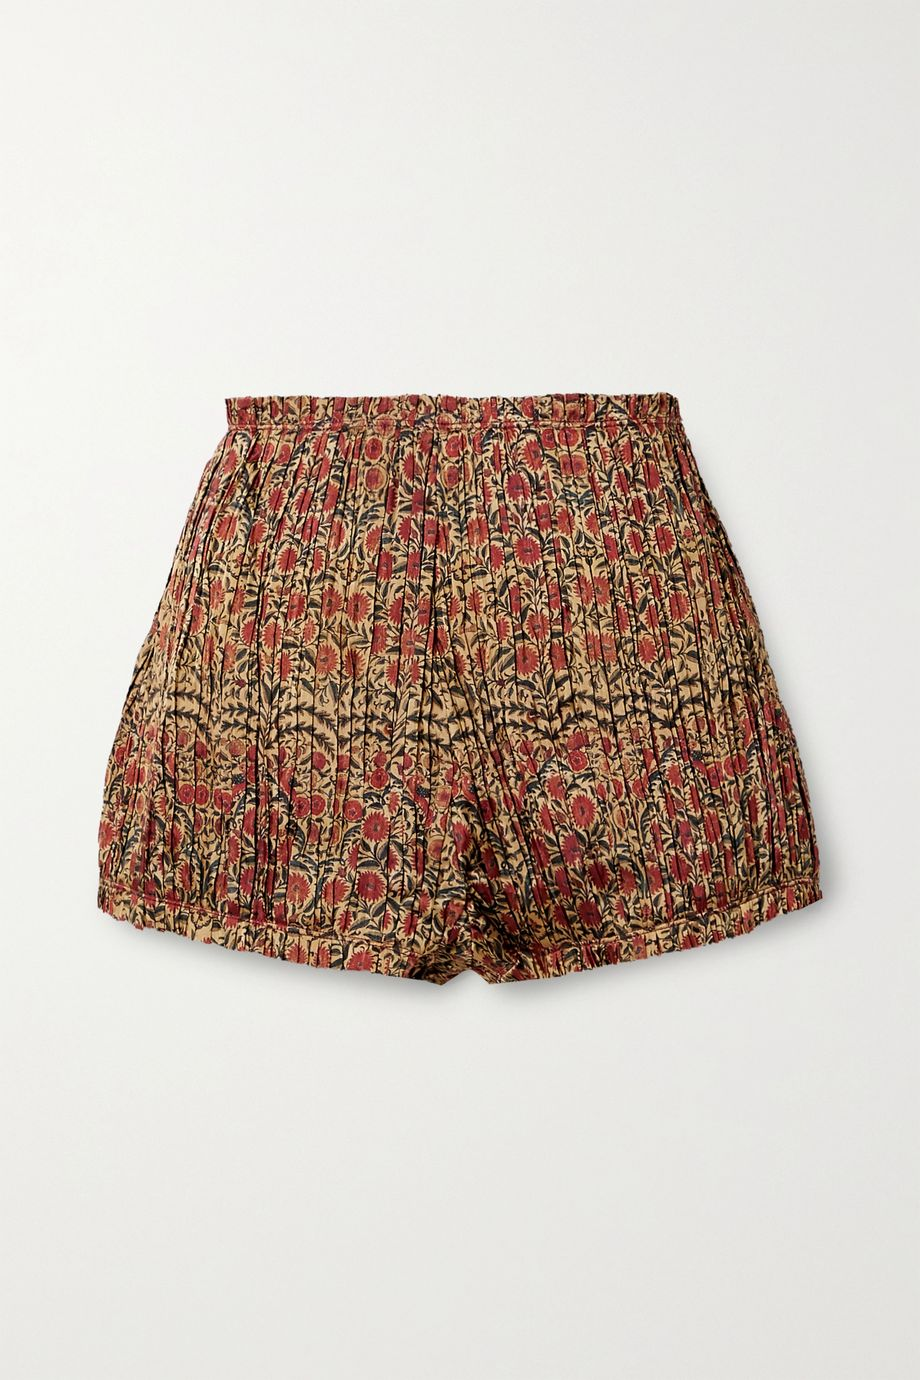 Khaite Hilary pleated floral-print twill shorts